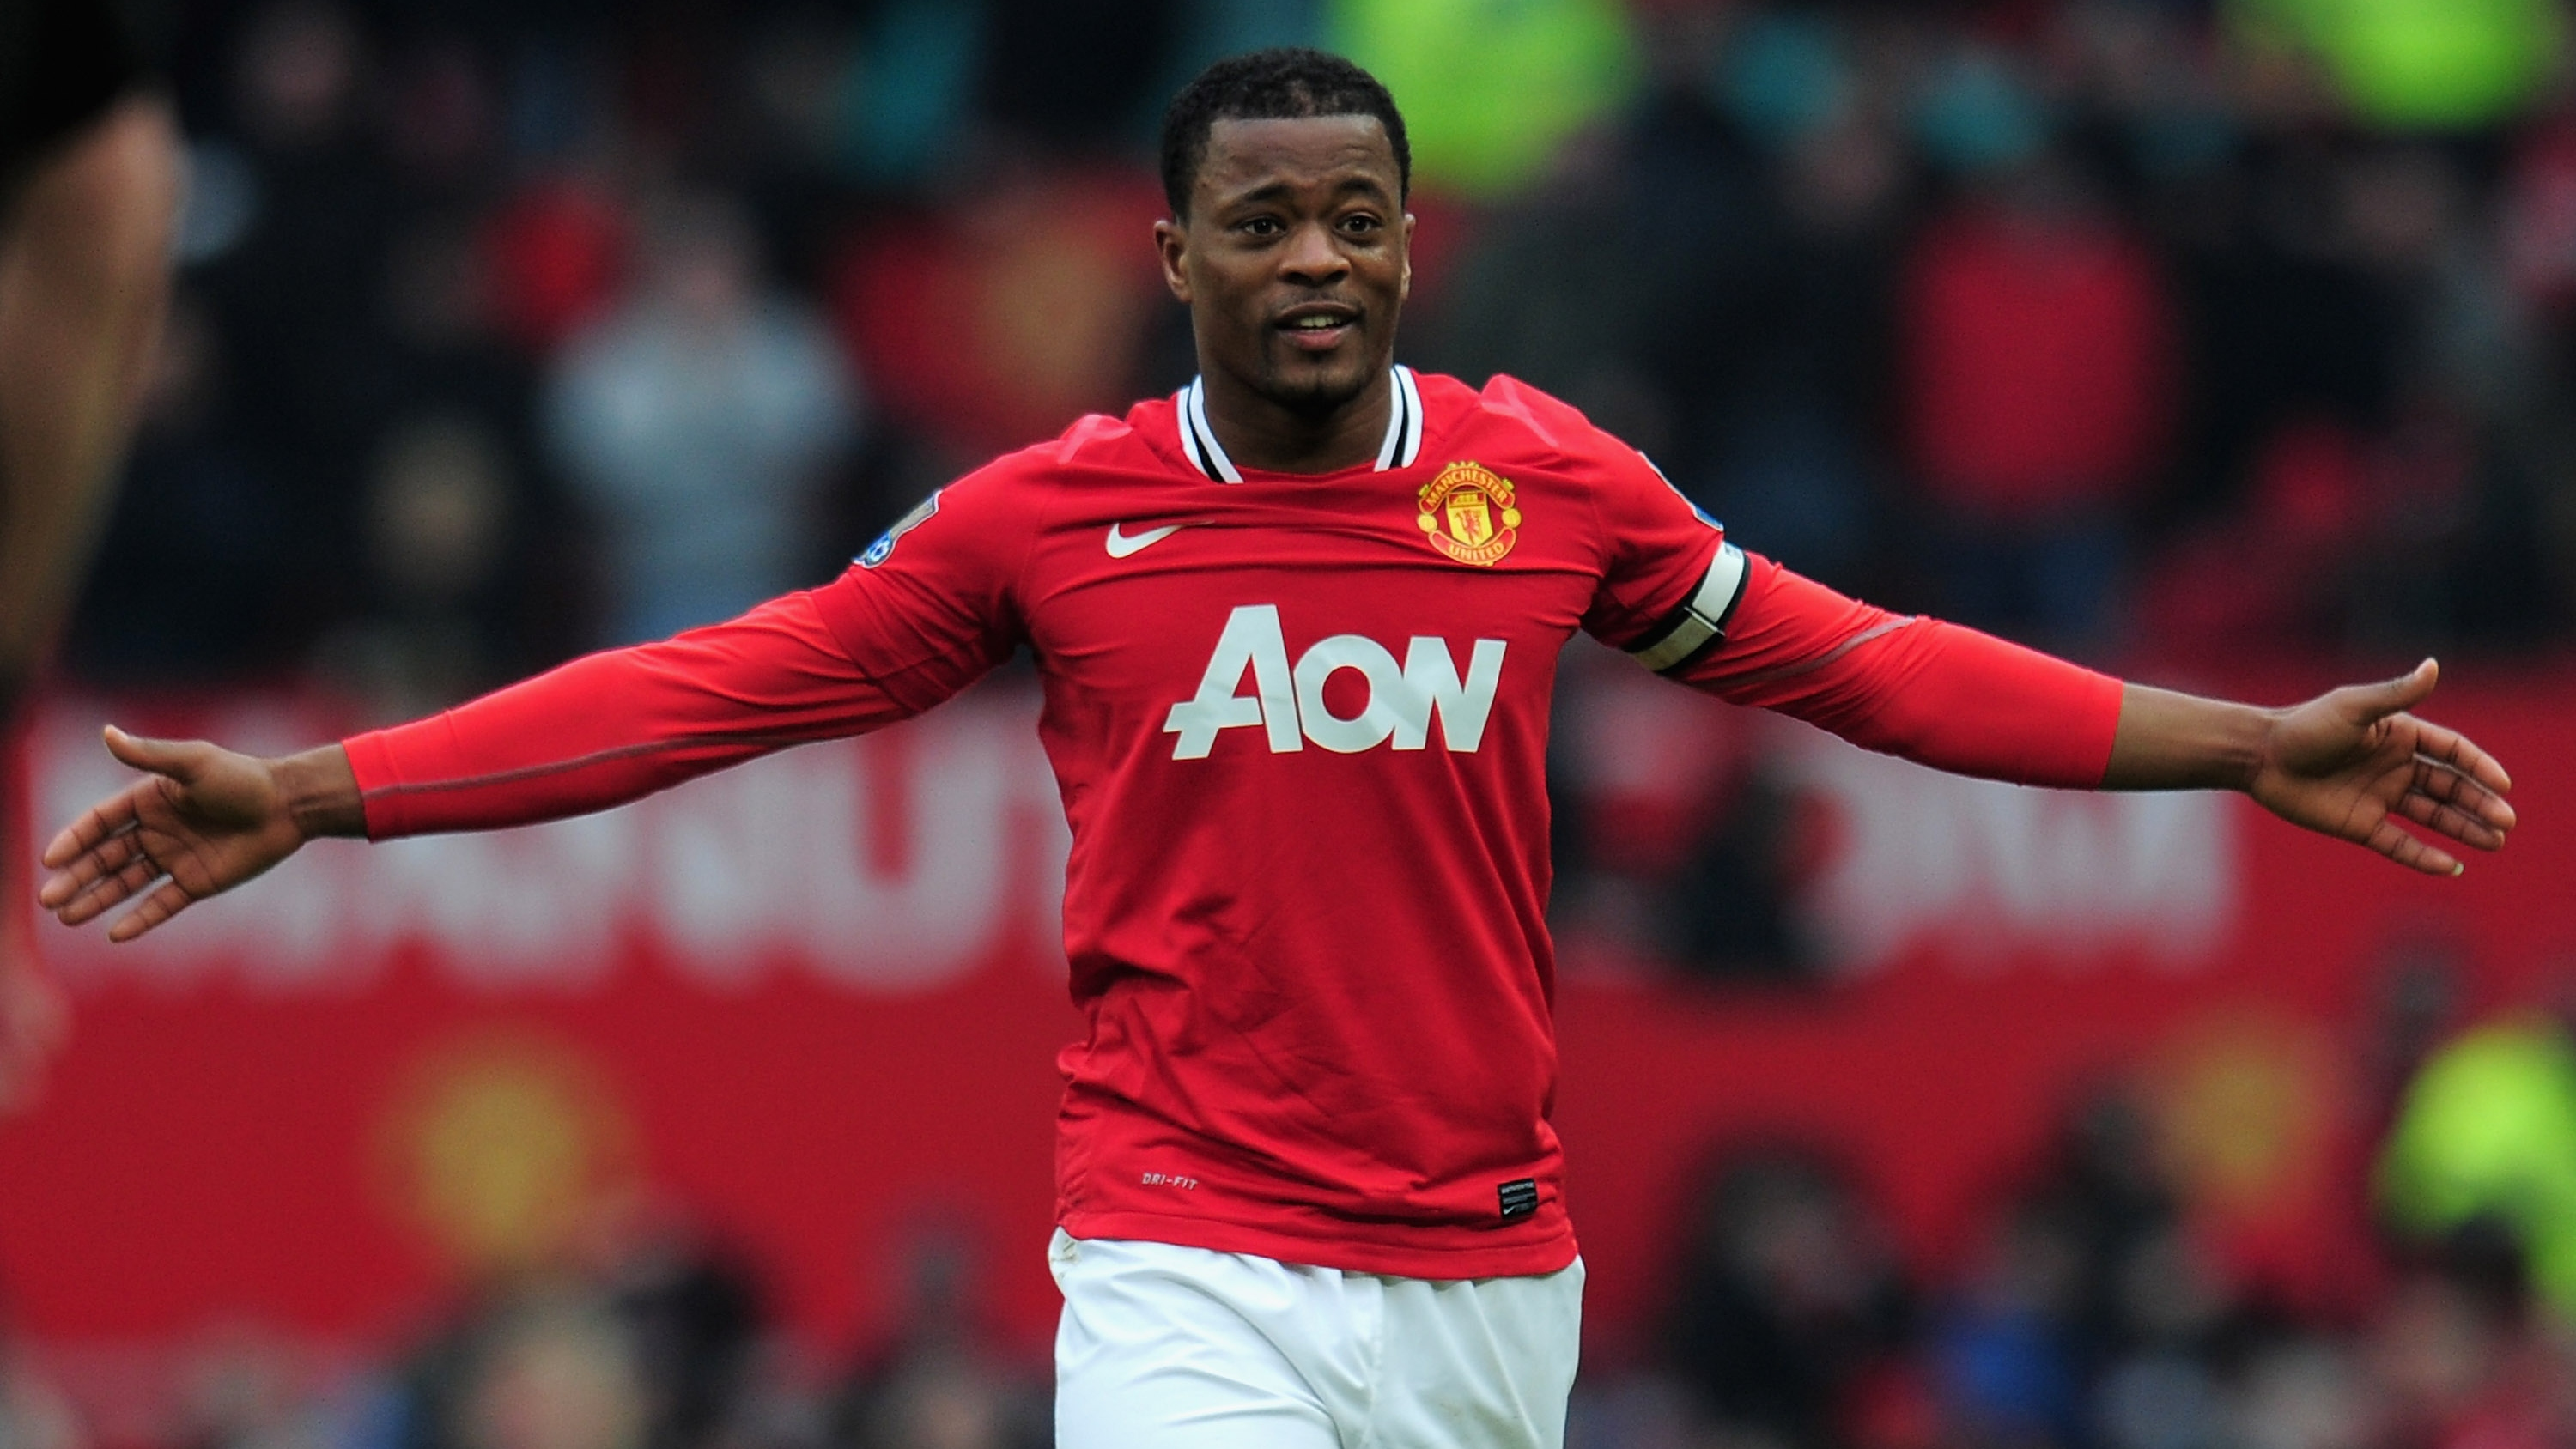 Patrice Evra in talks over Manchester United coaching role